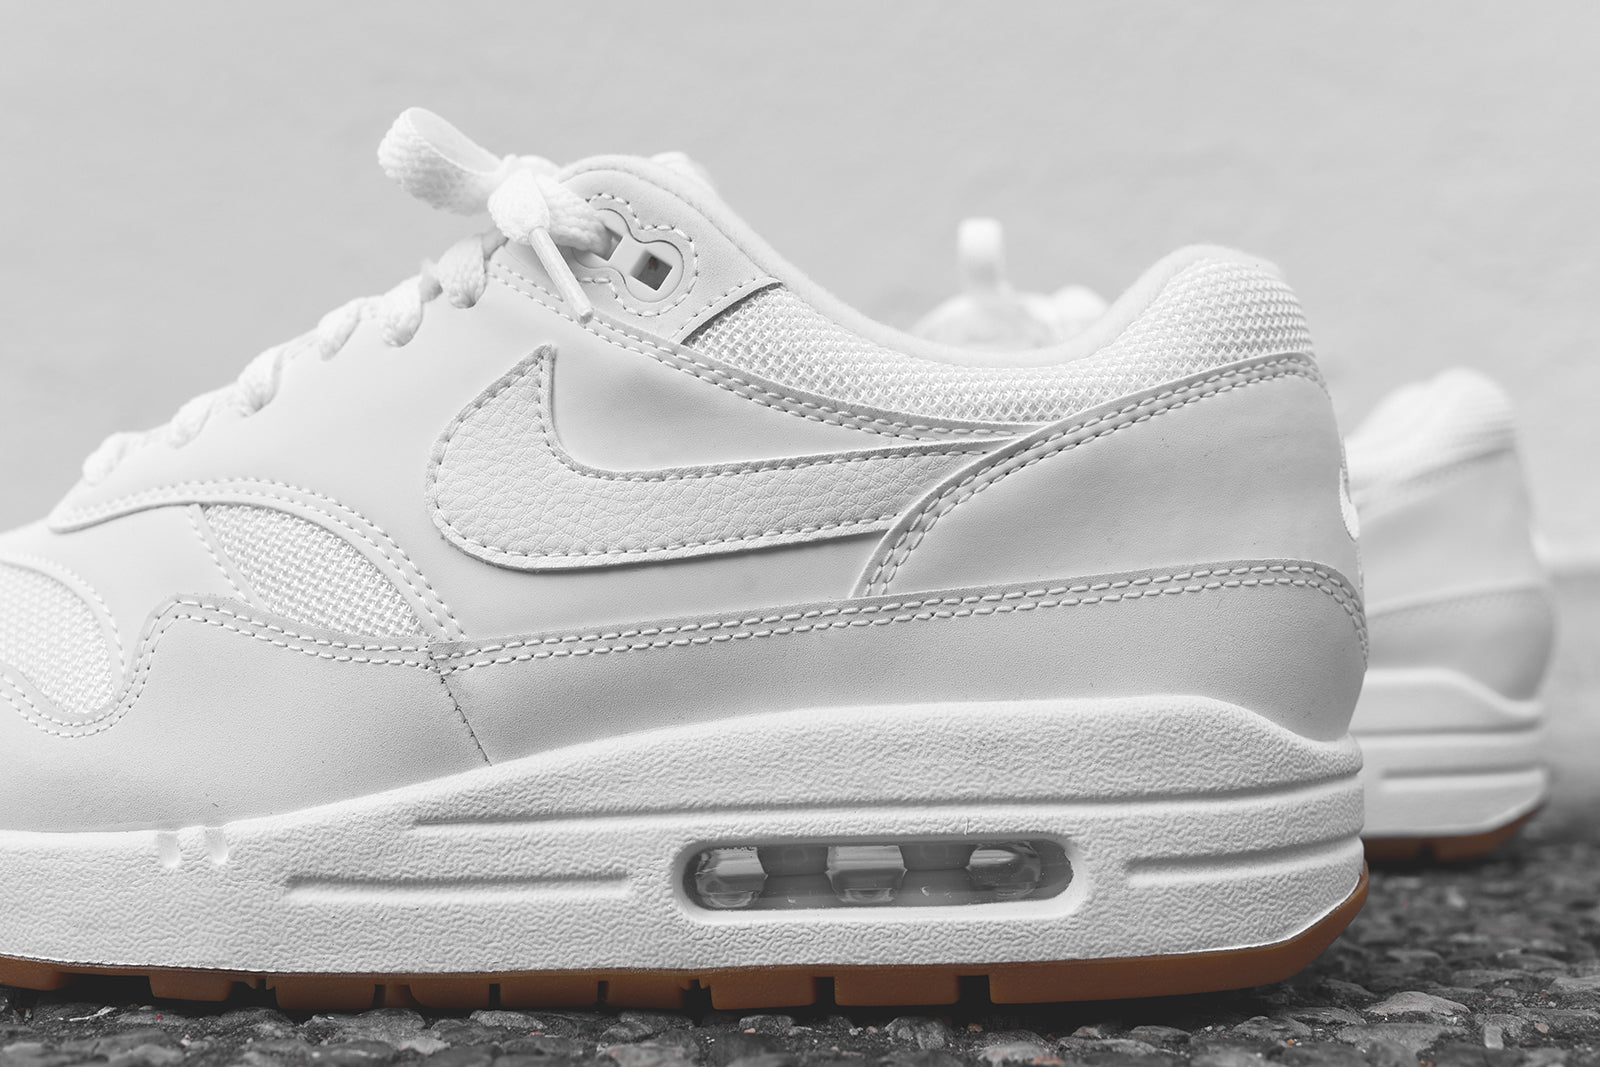 lowest price 91ca5 2b6a7 1 2 3 4. Nike releases the Air Max ...